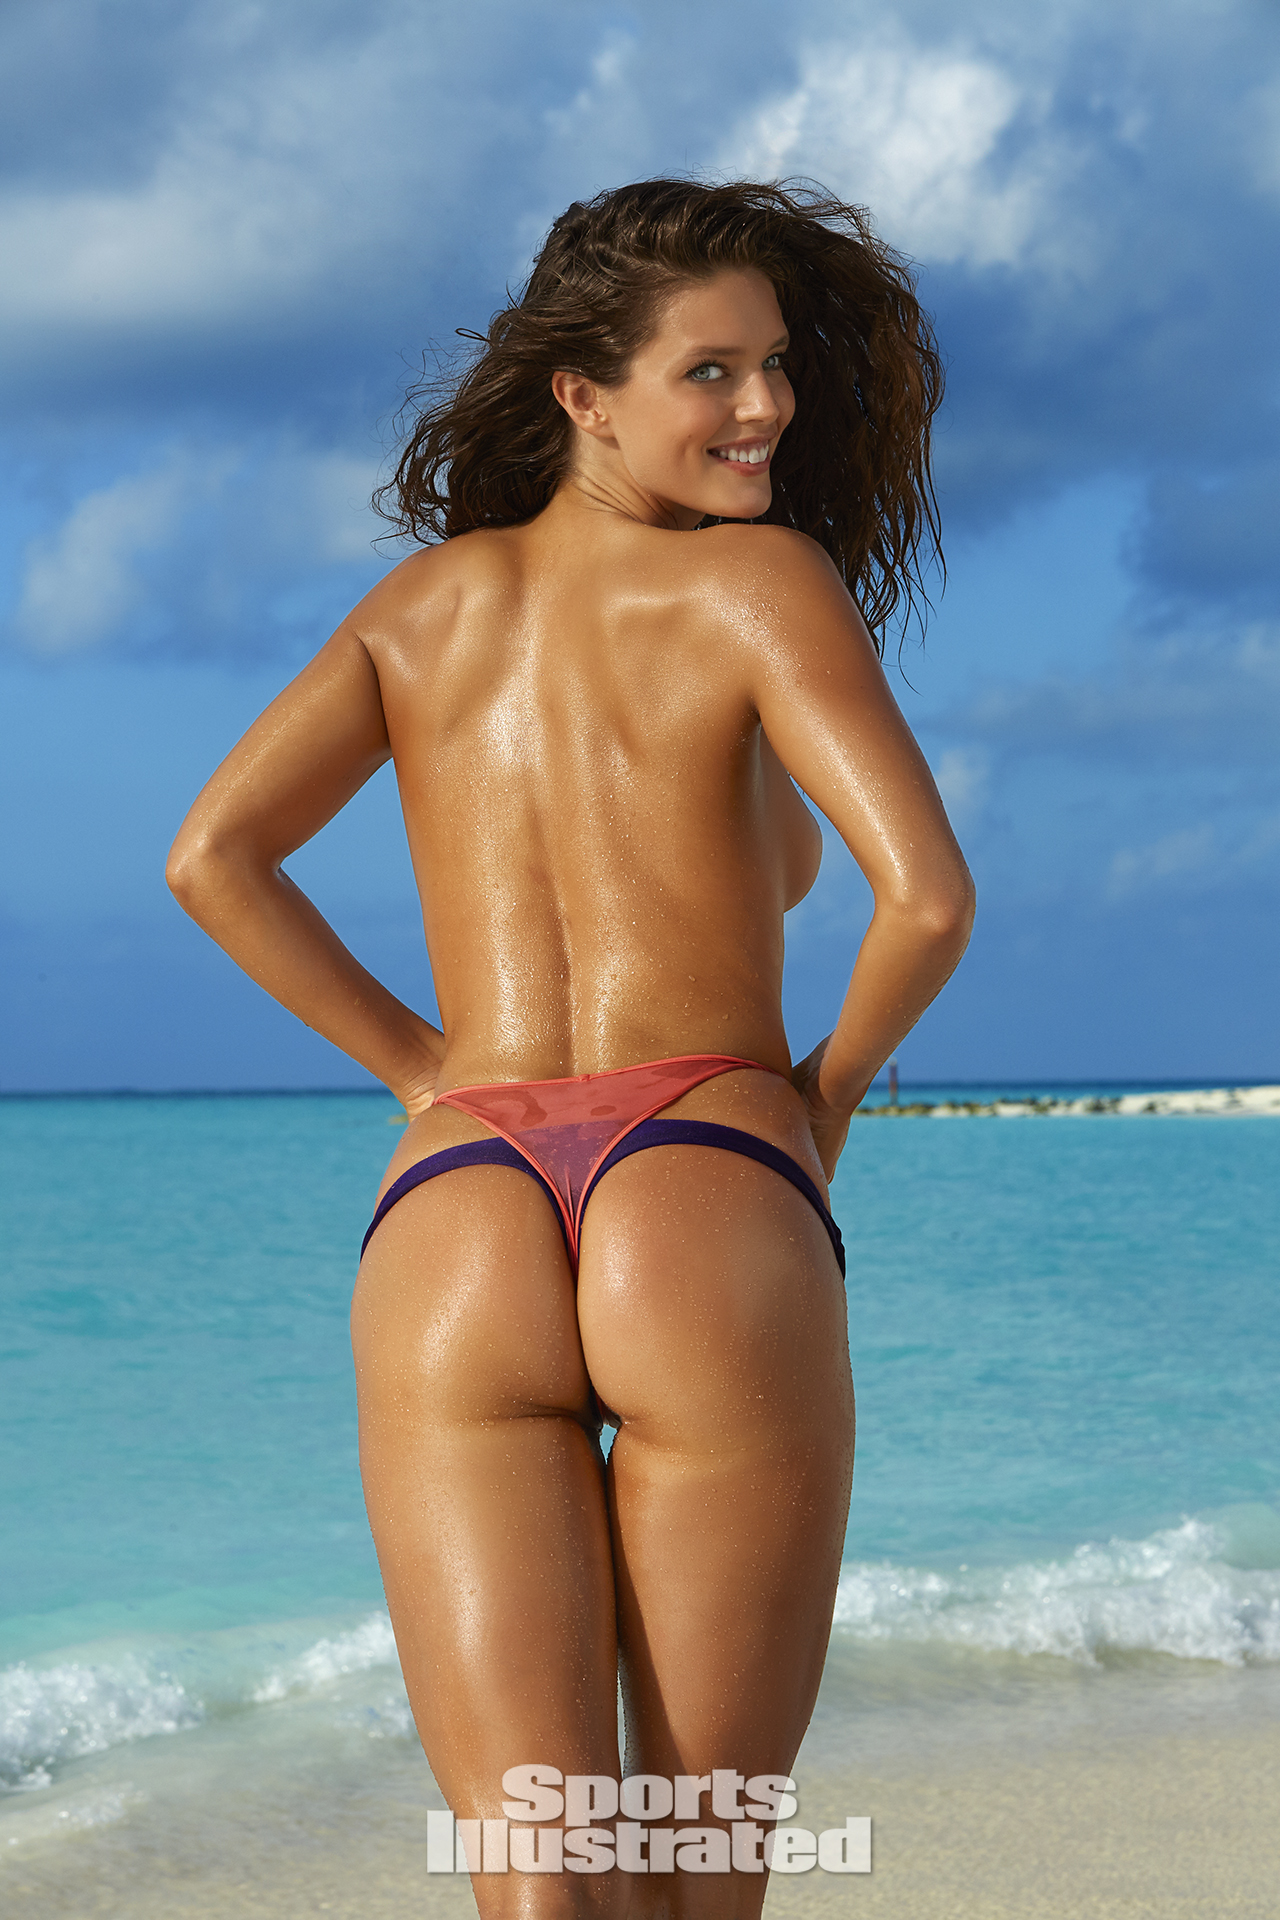 Emily DiDonato was photographed by James Macari in Turks & Caicos. Swimsuits by TeenyB Bikini Couture and Ola Vida.